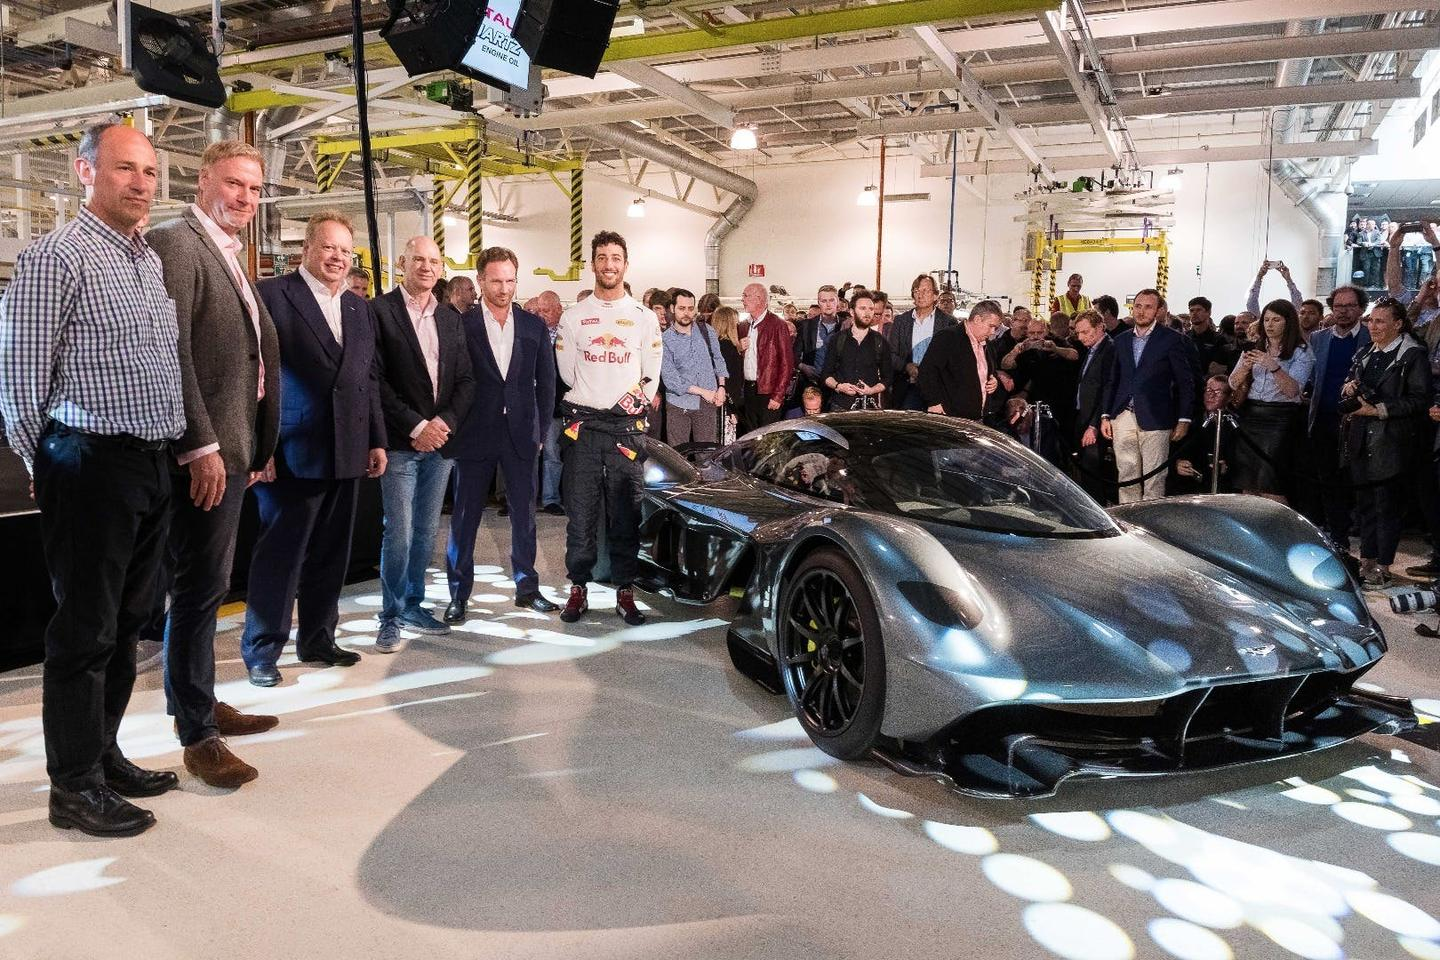 The AM-RB 001 at its styling reveal in London